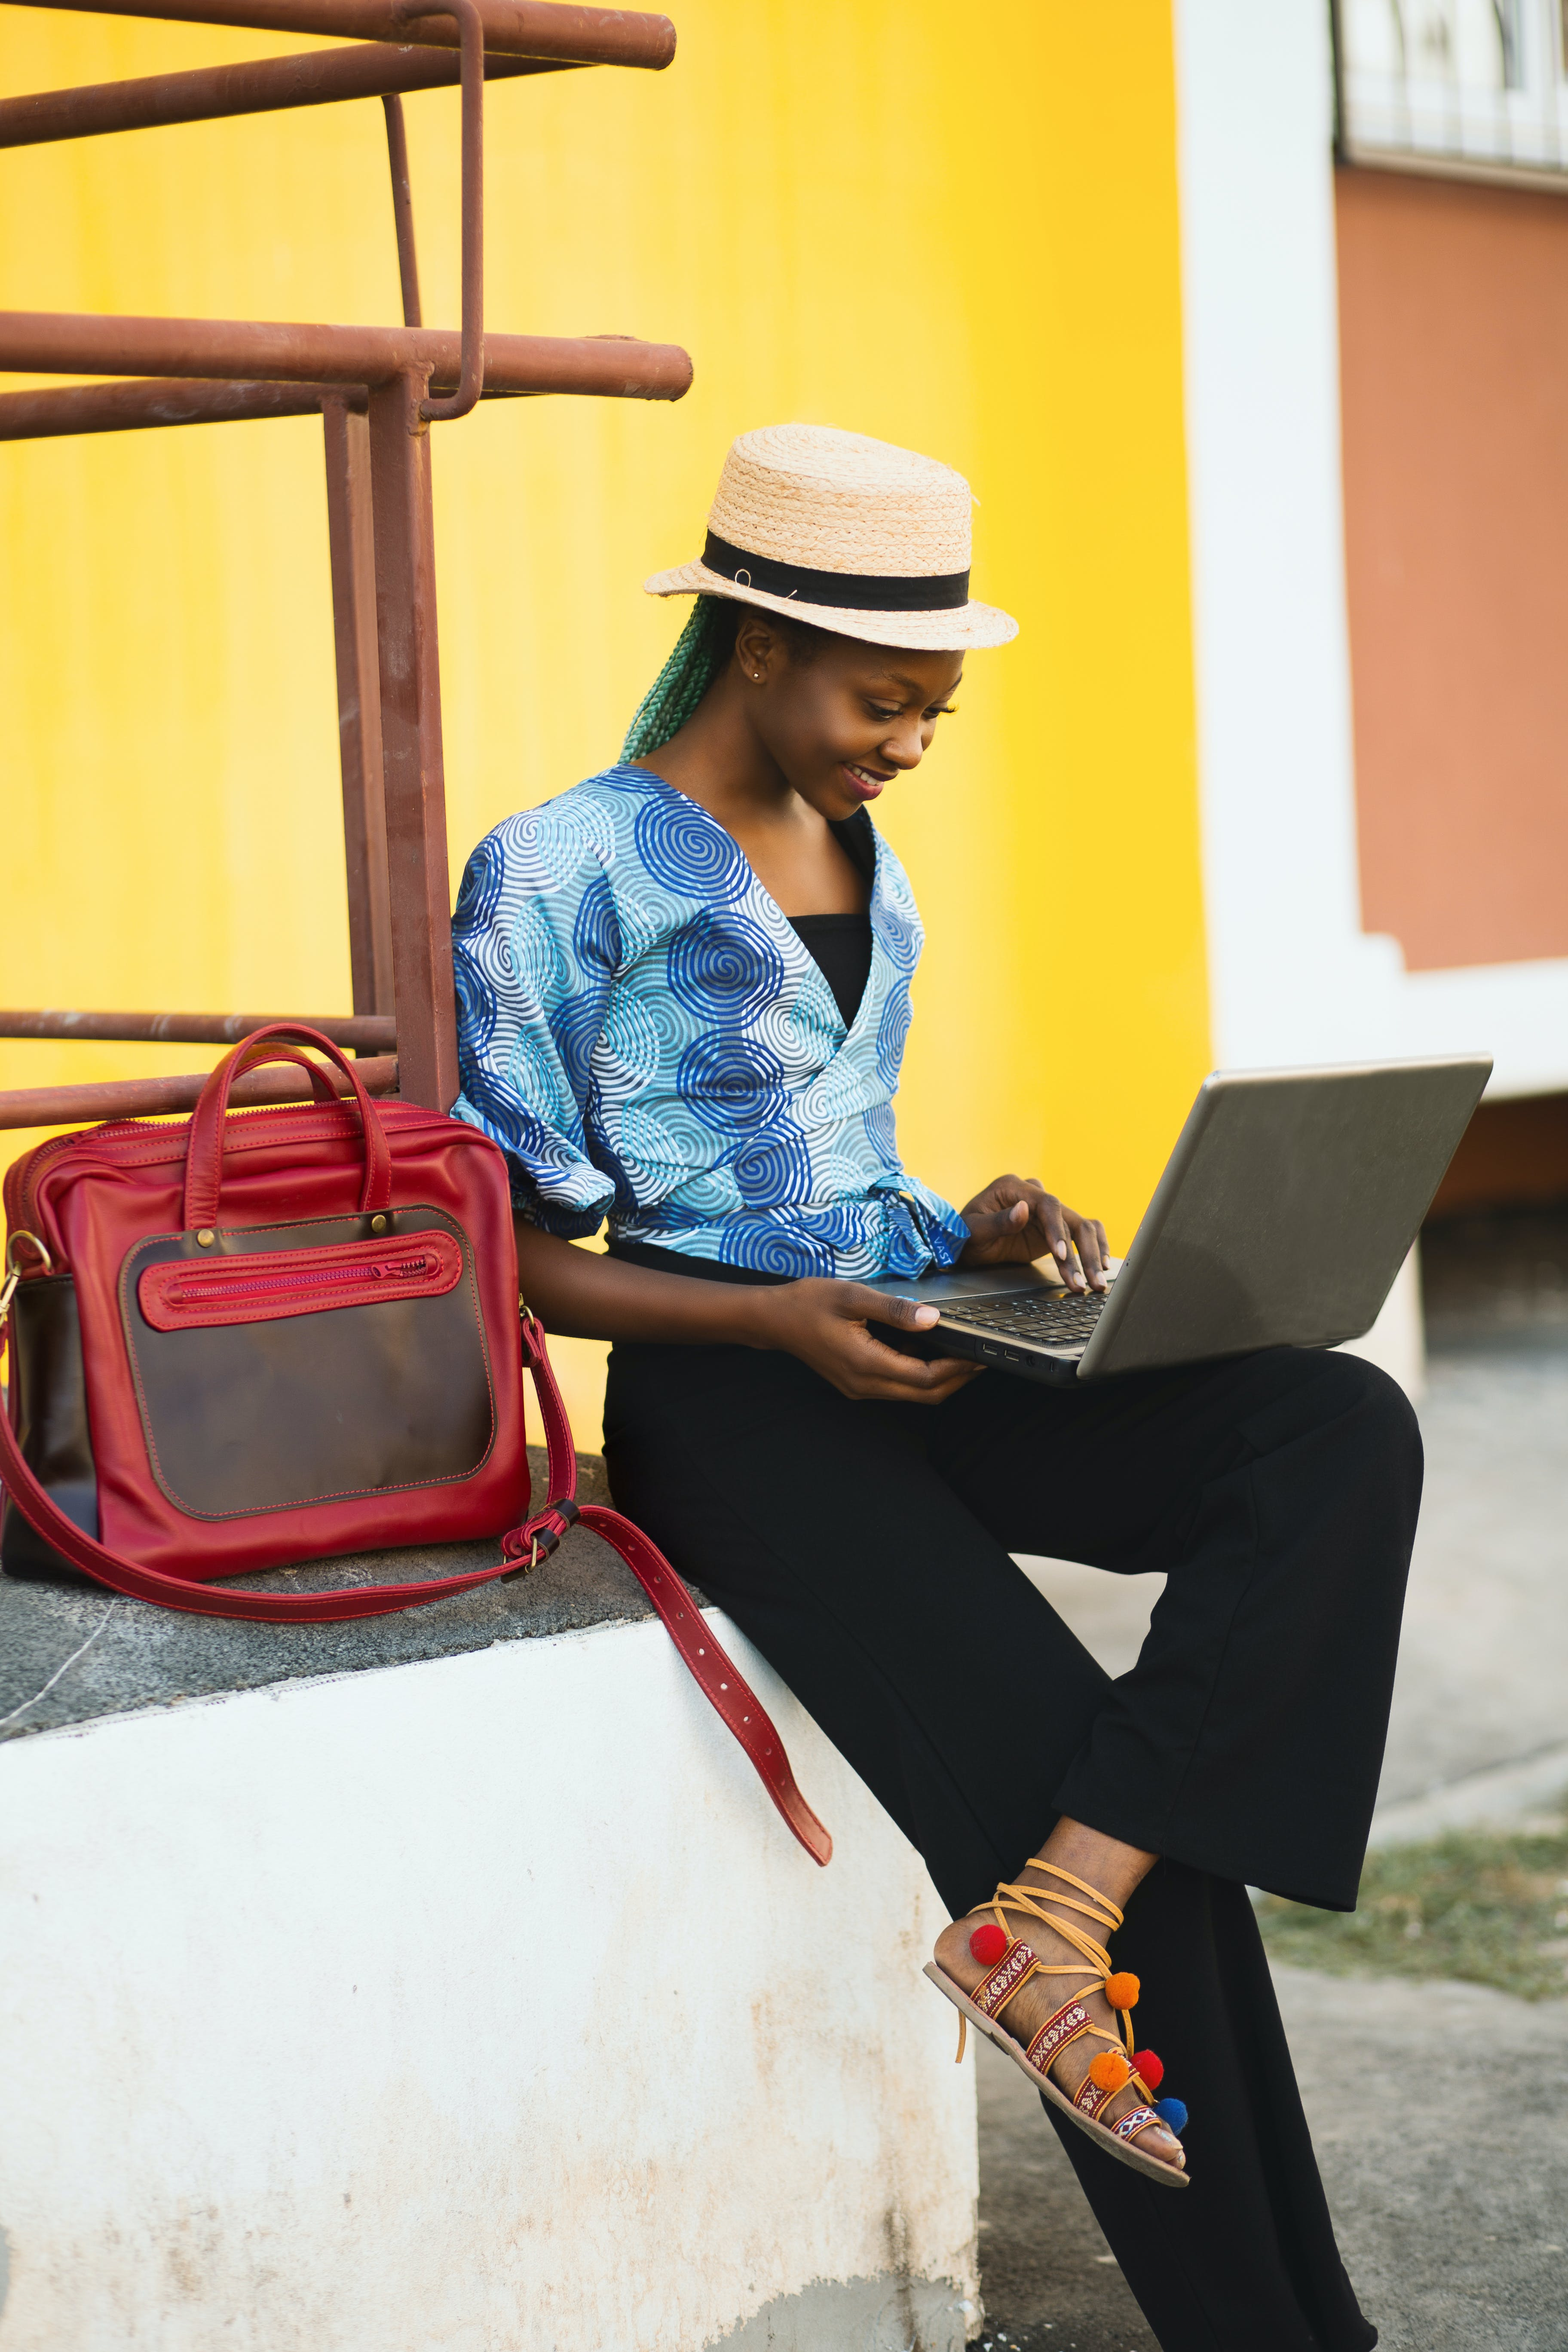 Woman Sitting While Using Laptop Computer